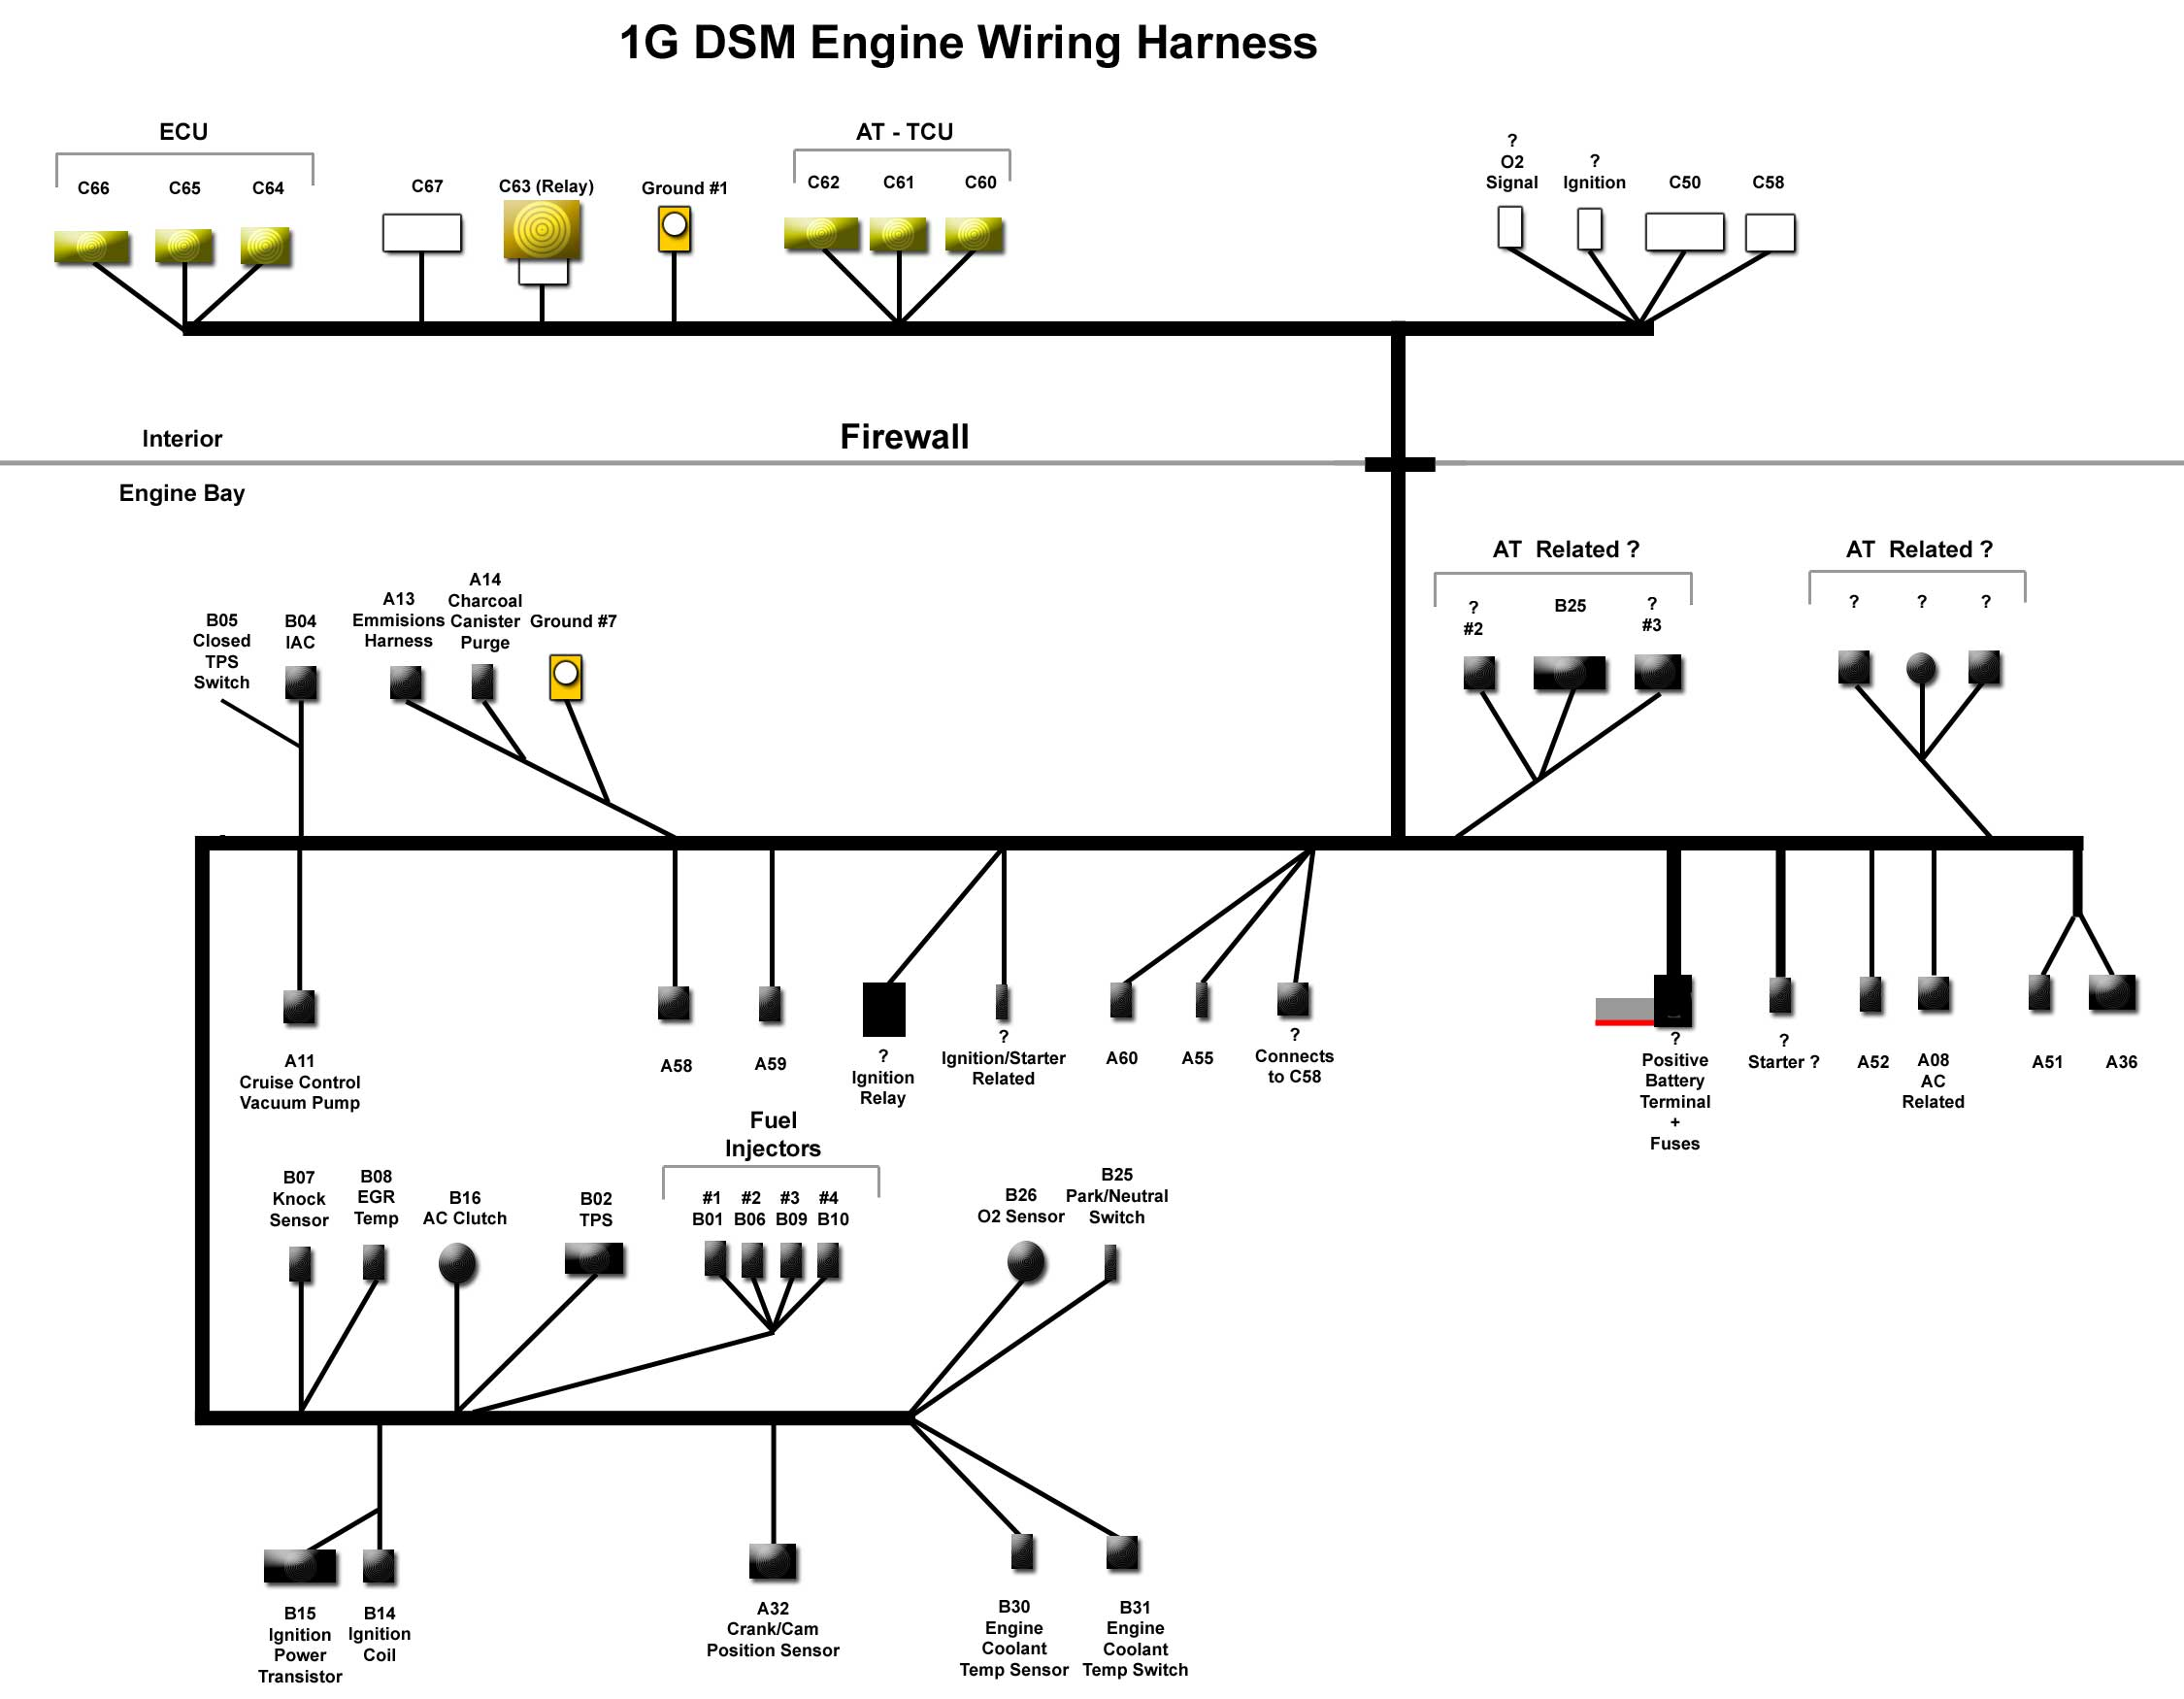 1G DSM EngineHarness 1gb dsm 4g63 turbo wiring harness diagram wiring harness diagram at cos-gaming.co